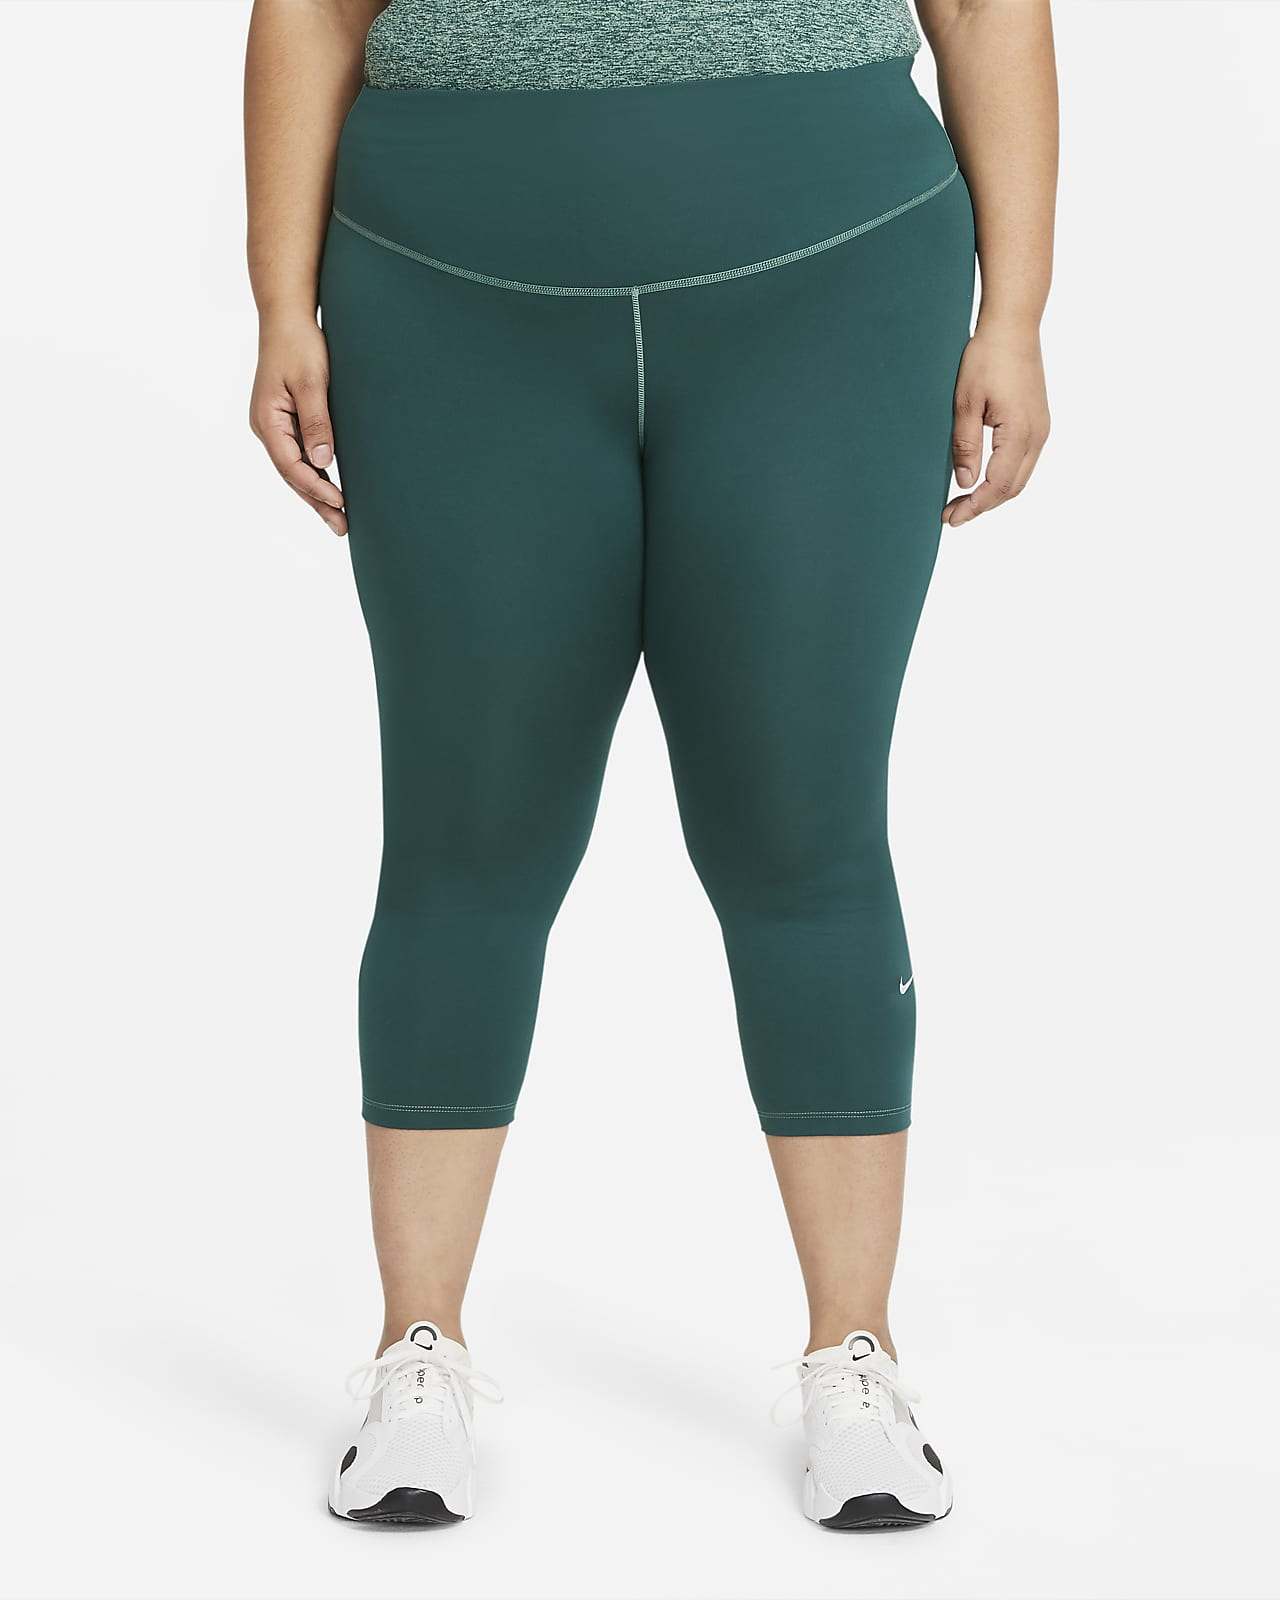 Nike One Women's Cropped Tights (Plus Size)